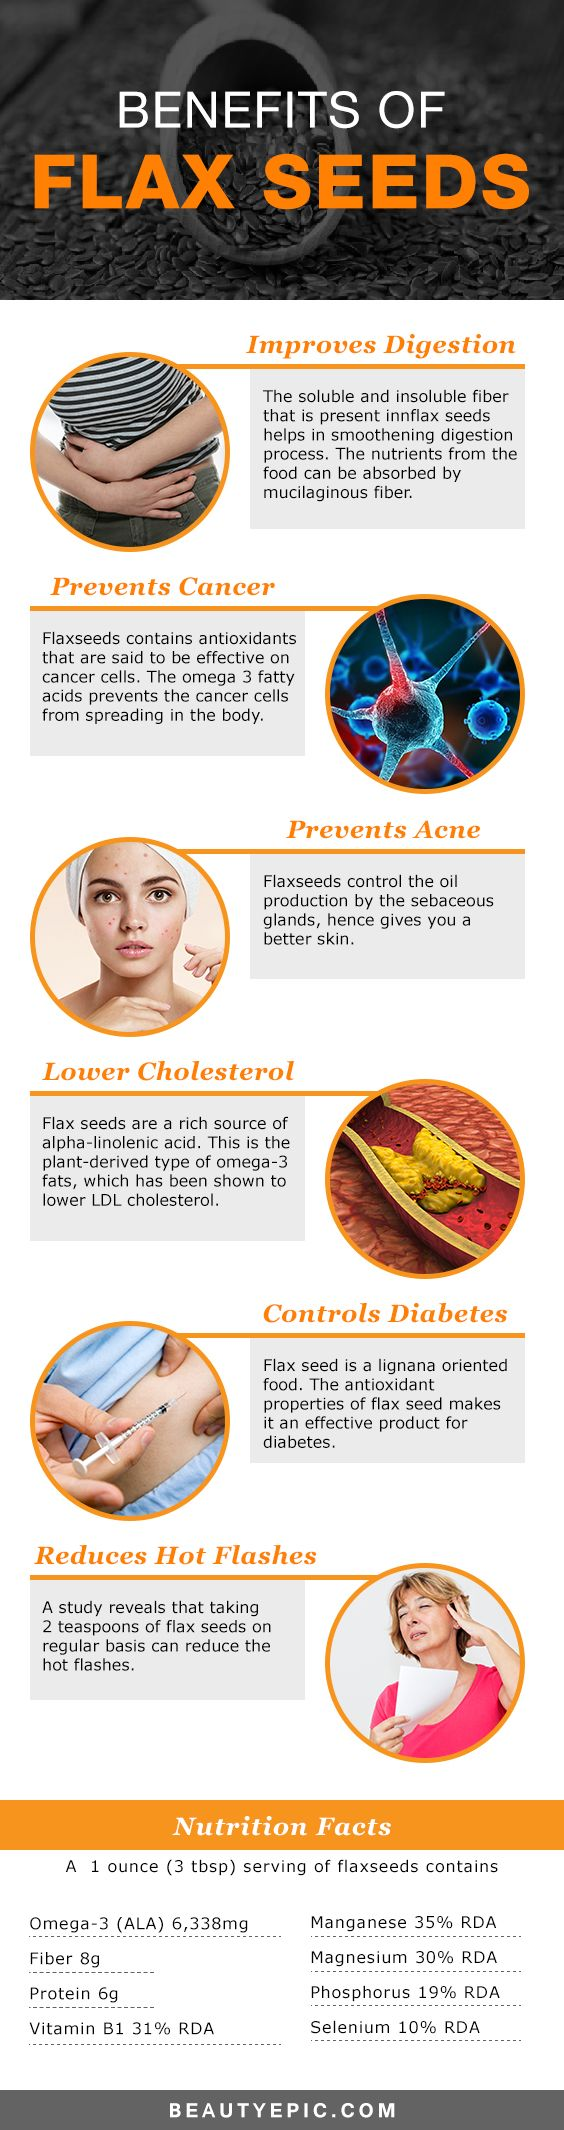 Benefits of Flax Seeds For Skin, Hair and Health... #SWaGKing ✨☝★ www.swaggerkinginnovations.com ★¥£$★ ★$₭¥£$★ ★$₭★♥★$₭★